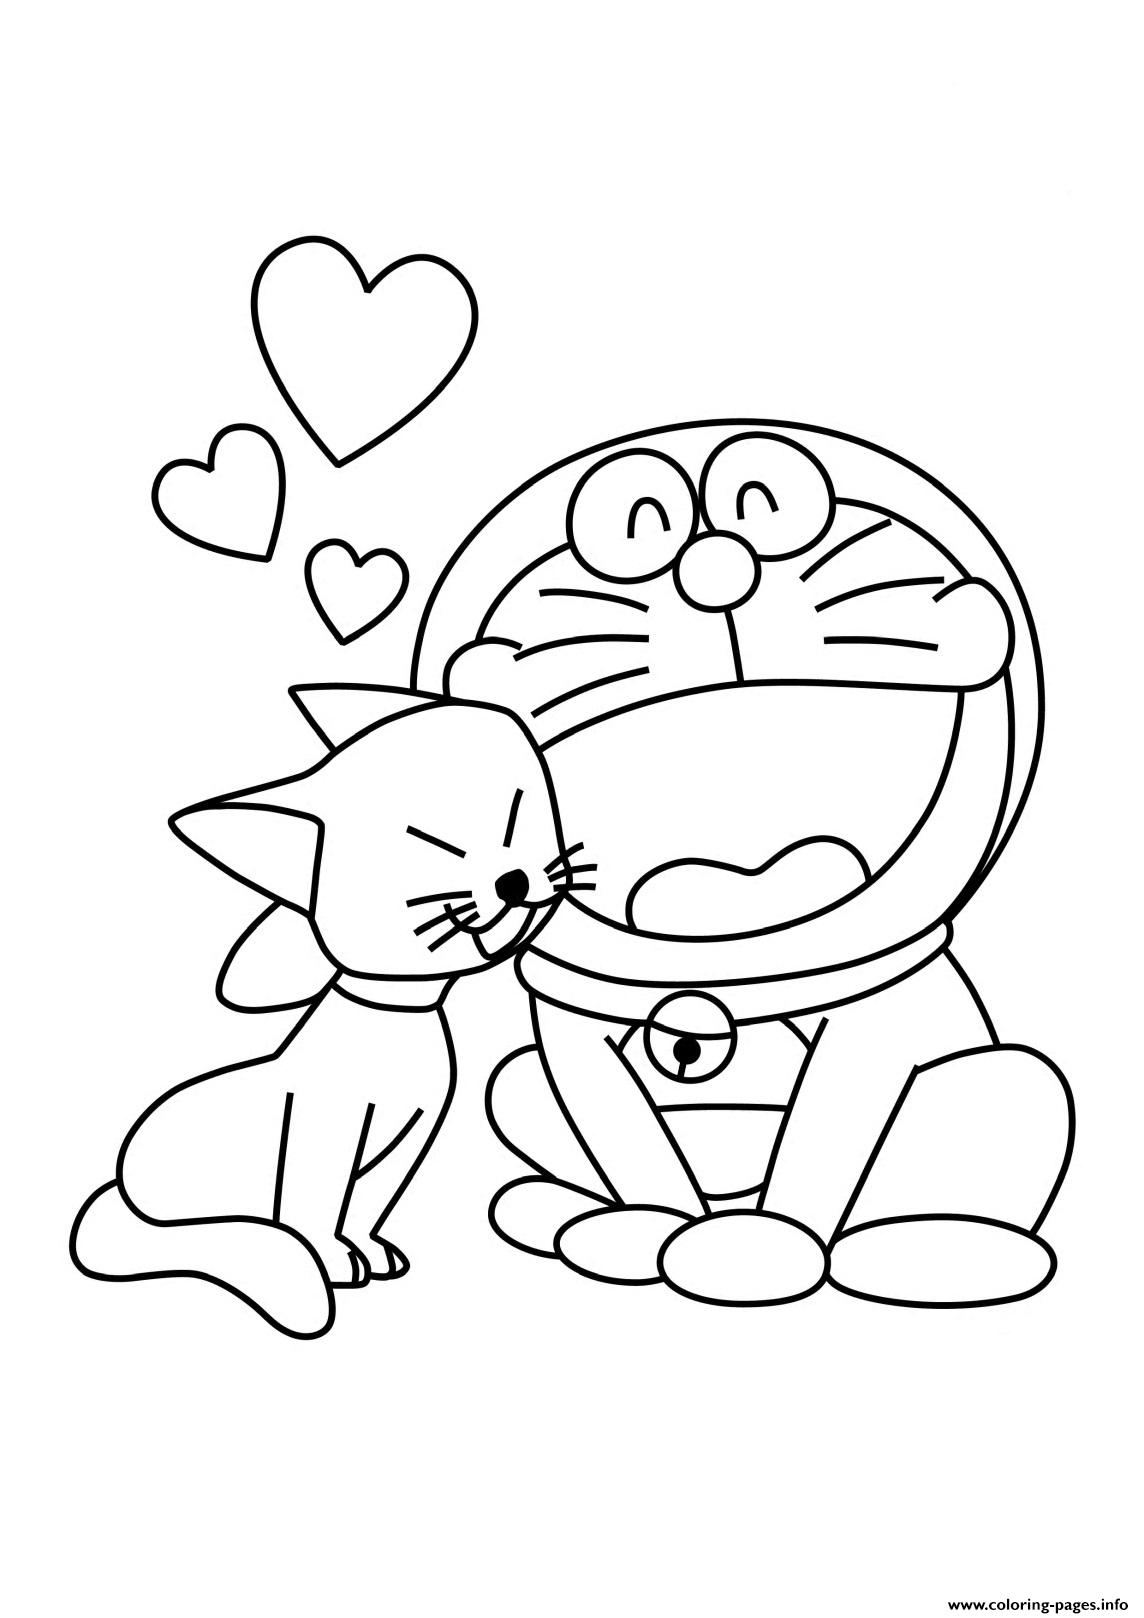 Doraemon In Love B314 Coloring